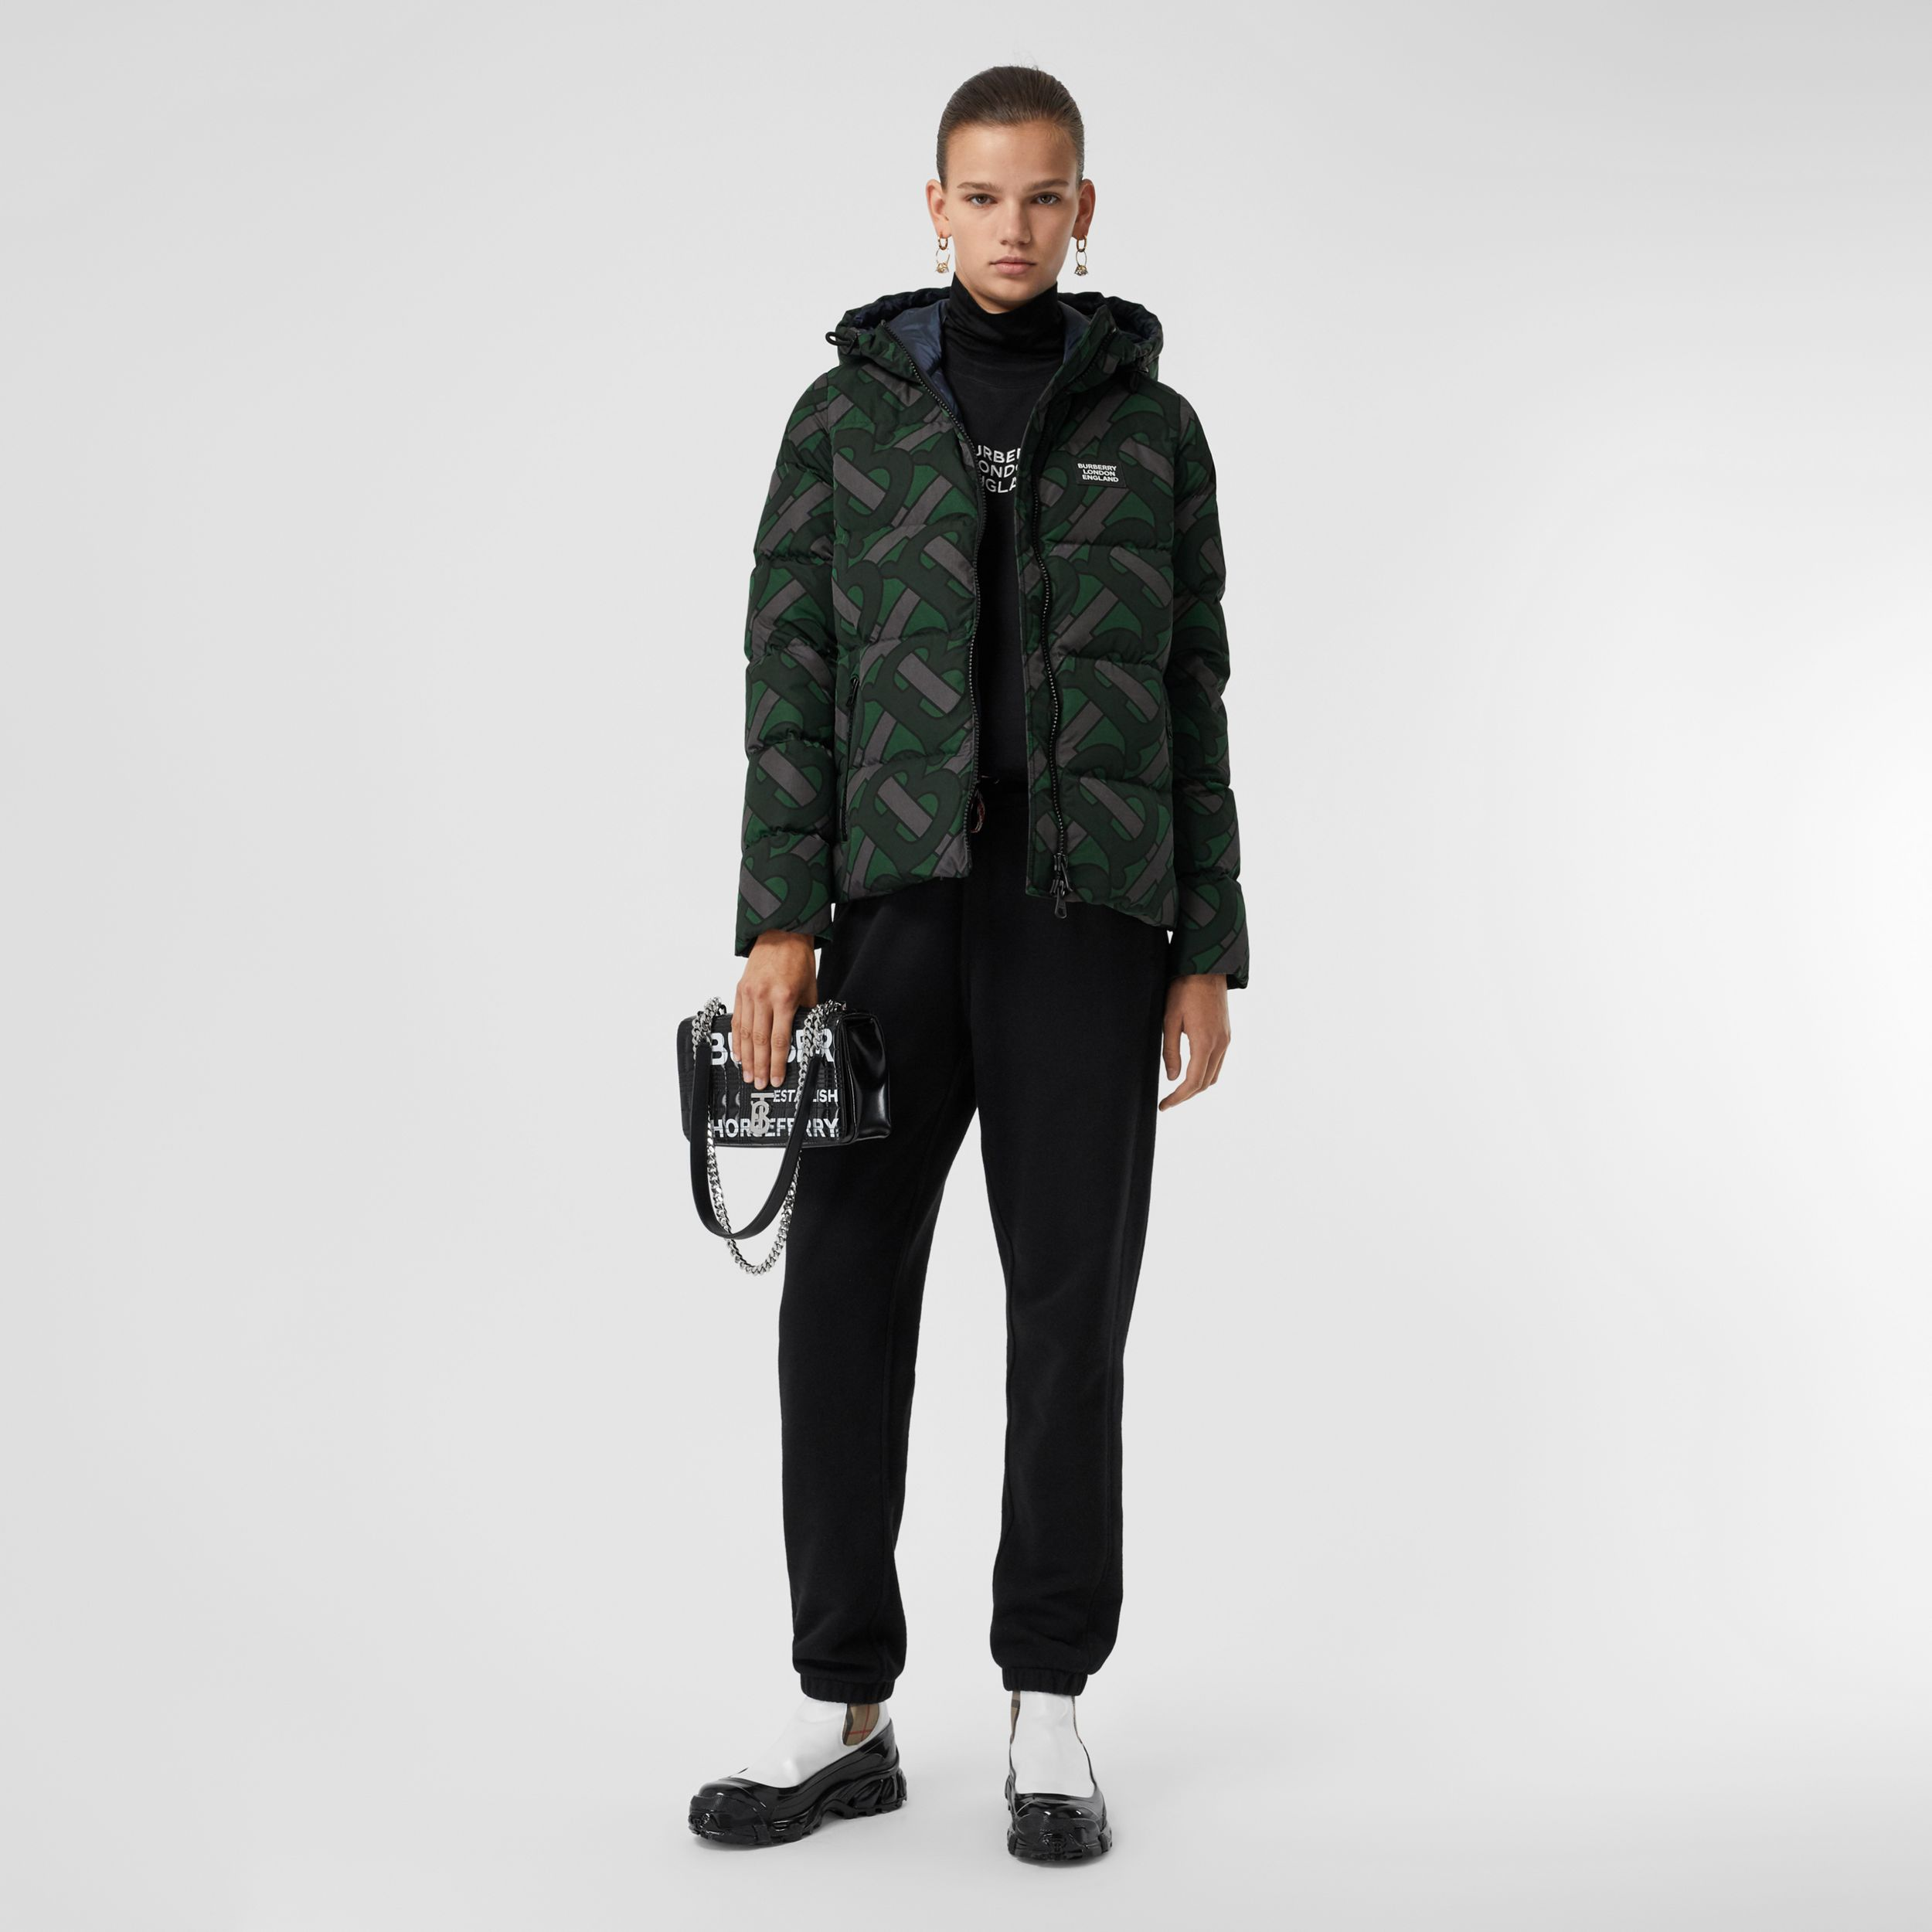 Monogram Print Hooded Puffer Jacket in Forest Green - Women | Burberry - 4